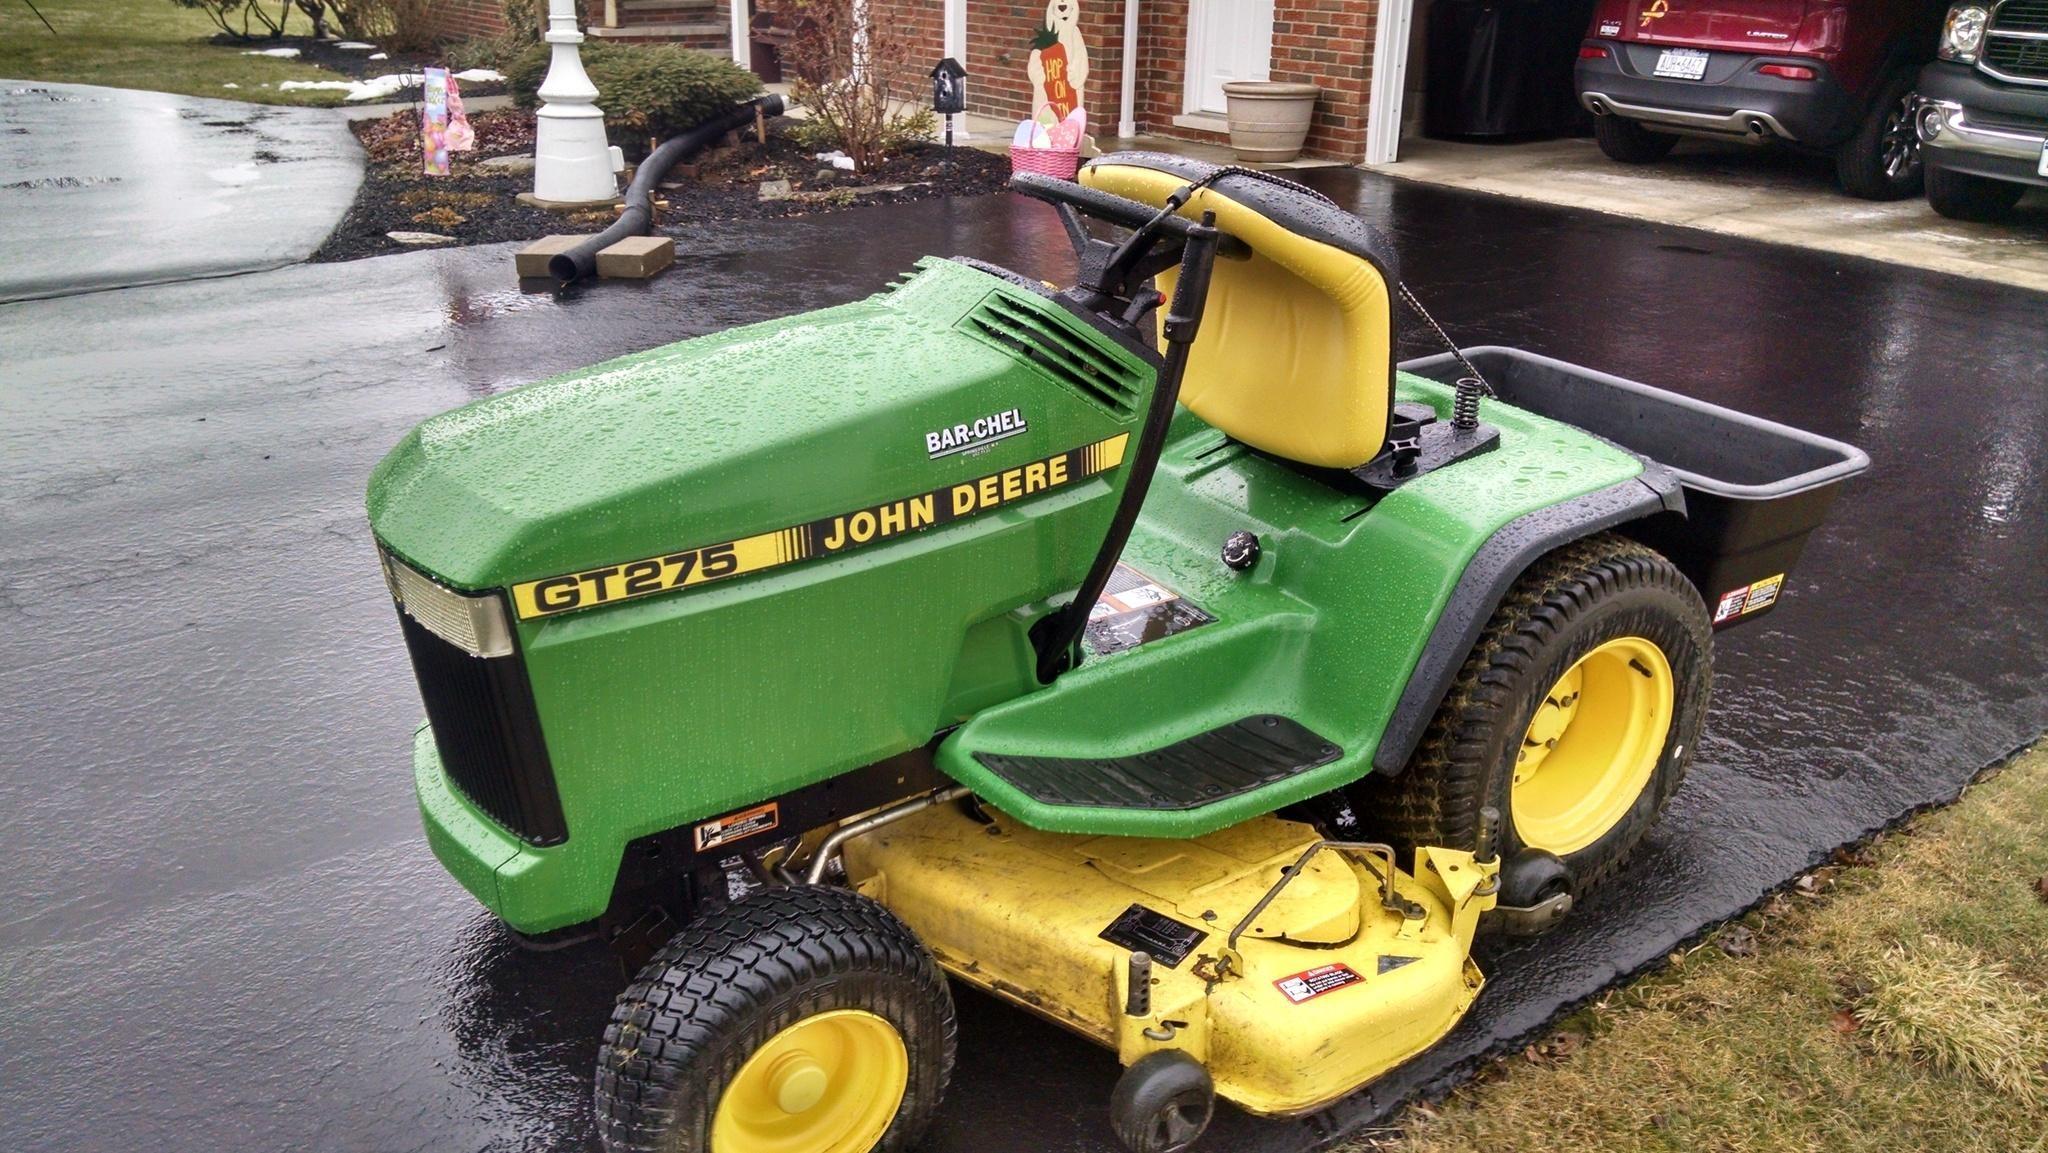 wisconsin ag connection john deere gt275 riding lawn mowers for sale. Black Bedroom Furniture Sets. Home Design Ideas